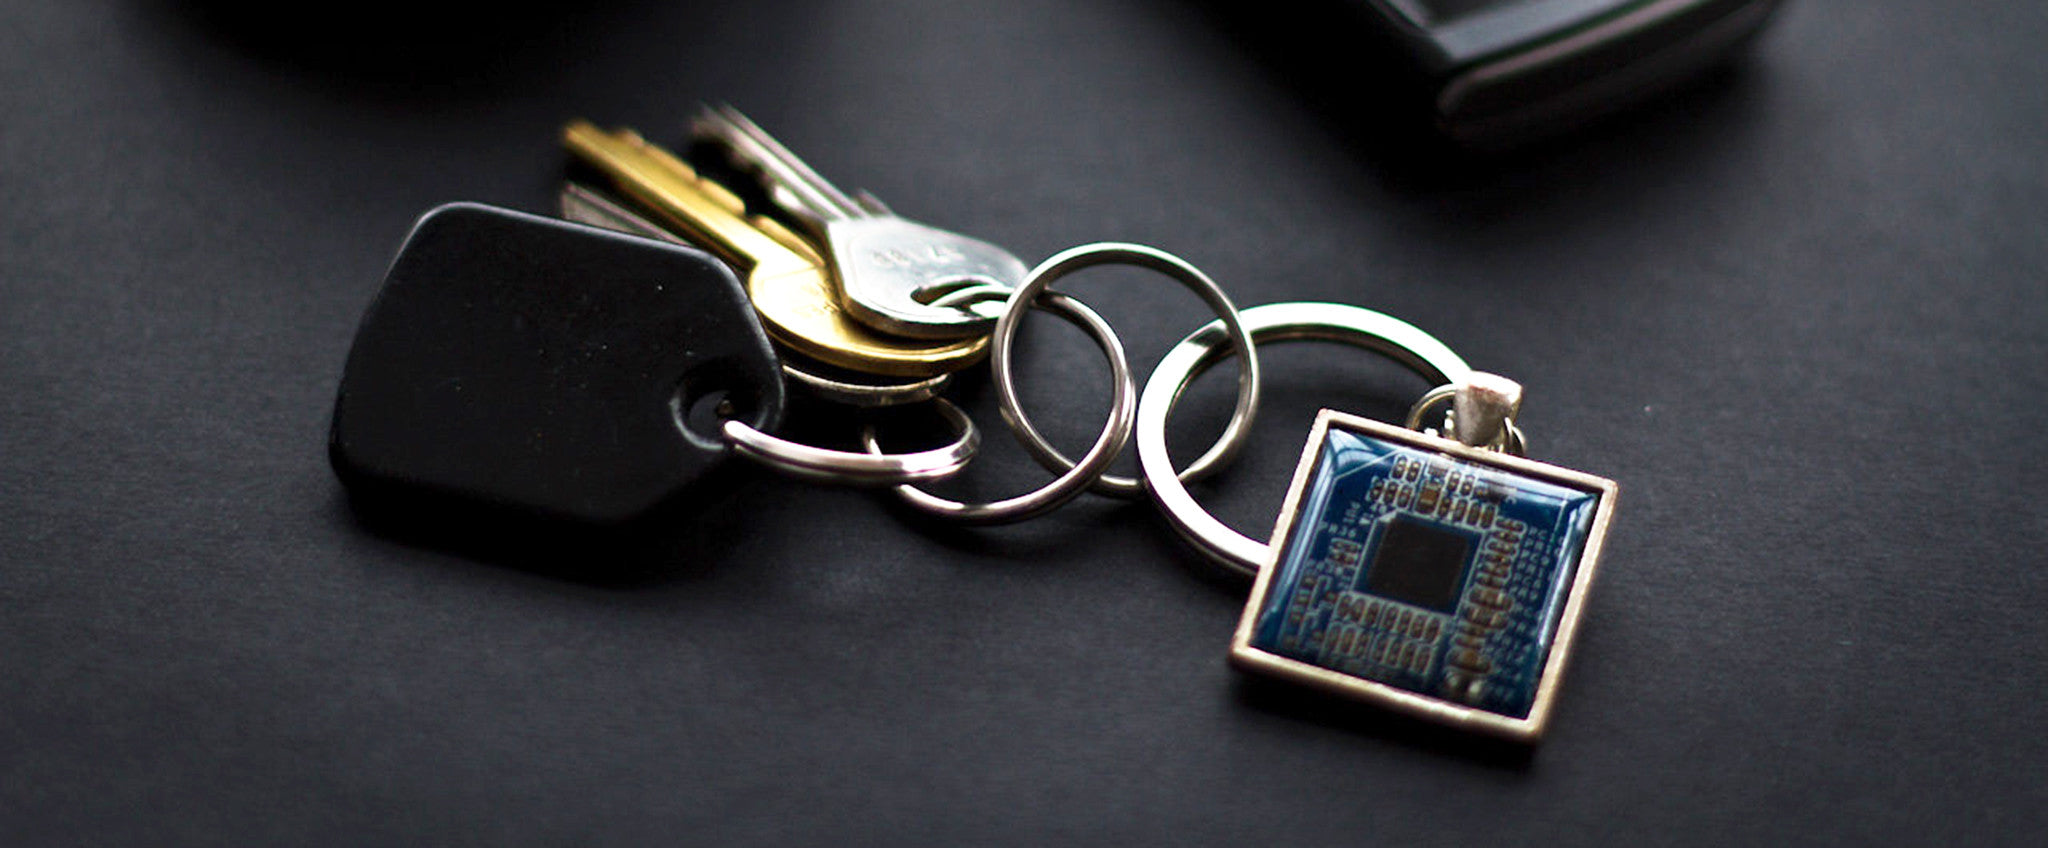 Men's keychain made of circuit board